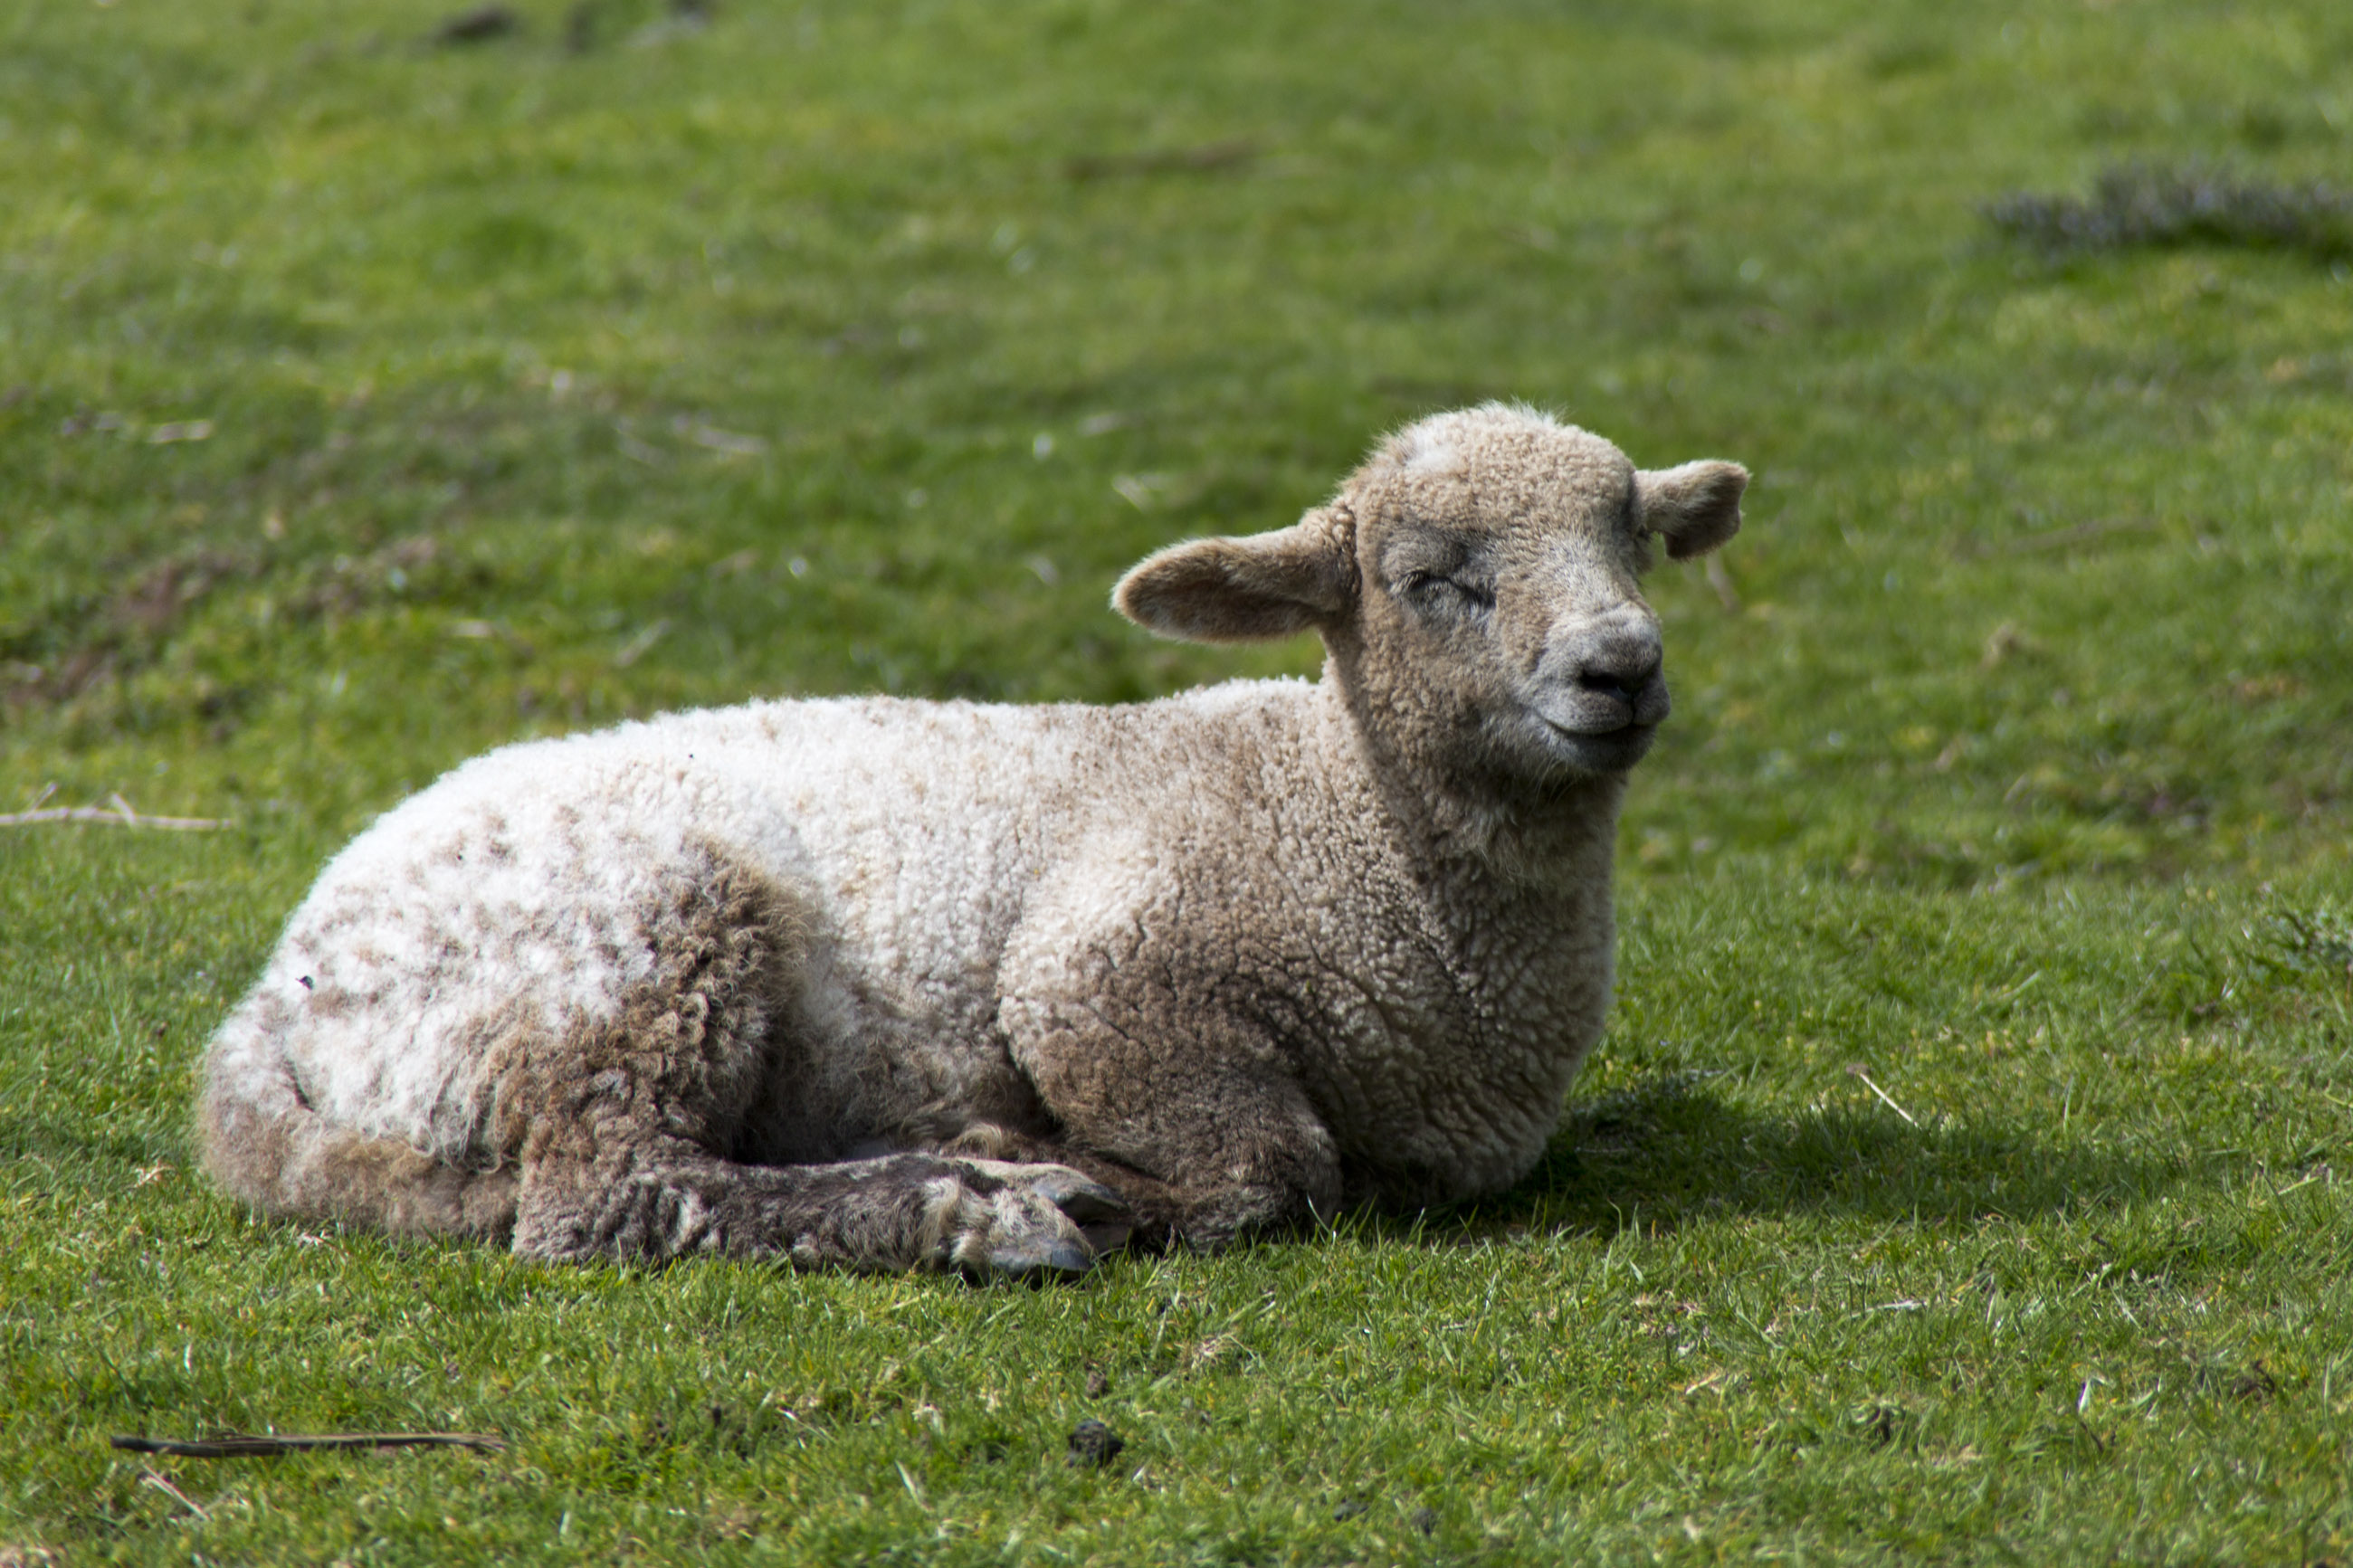 Sheep lying in the grass photo